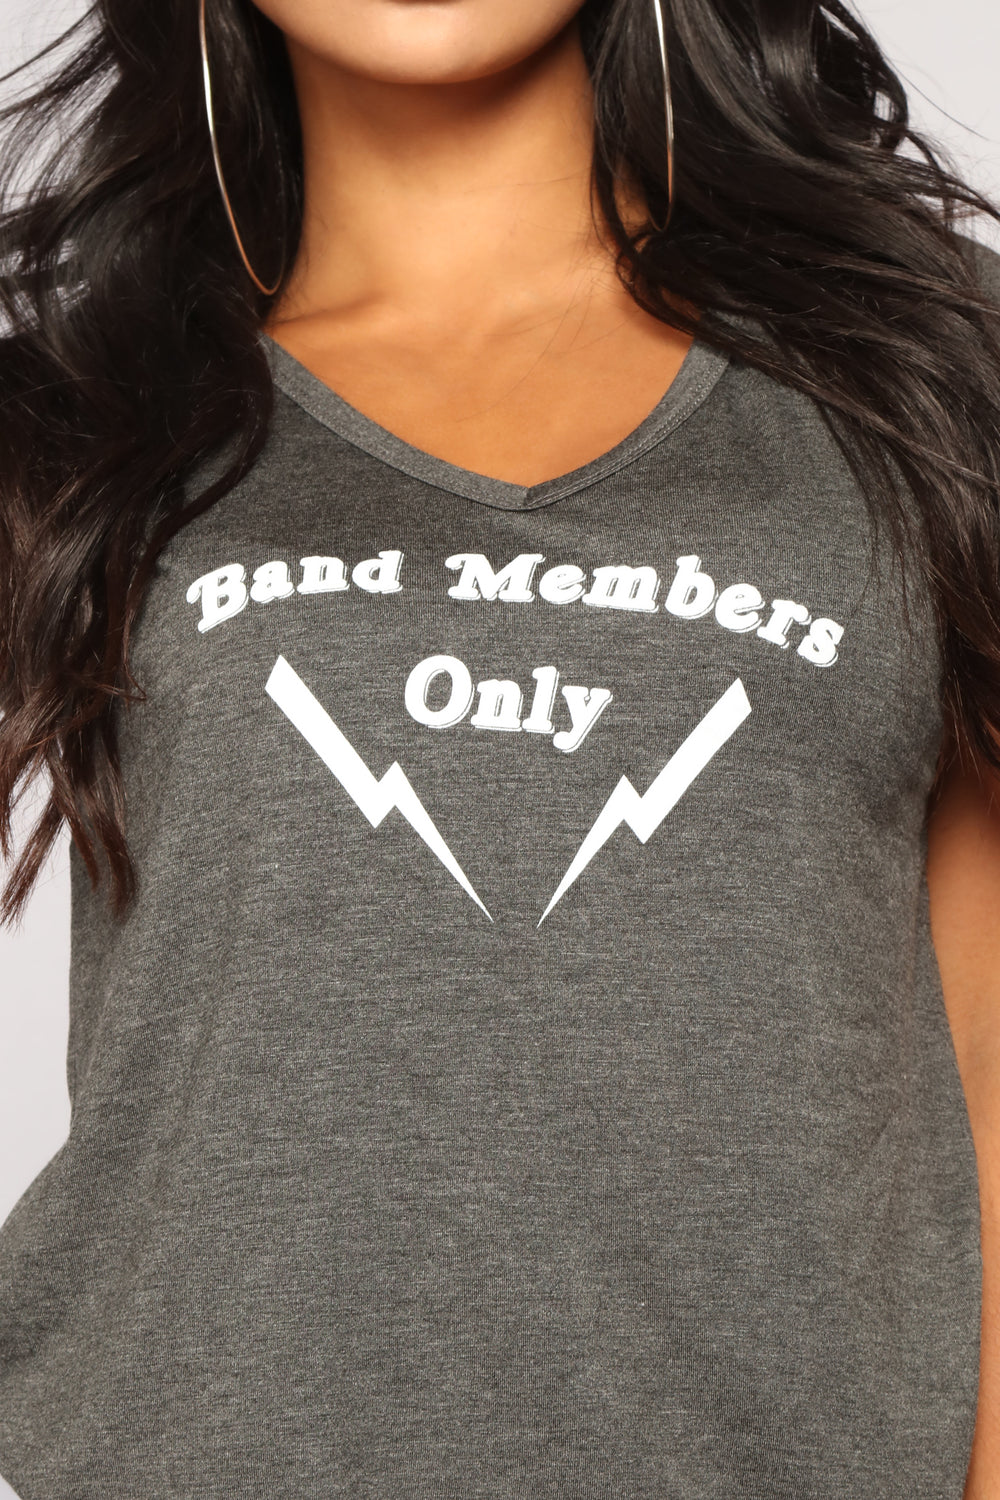 Band Member Only Tee - Charcoal